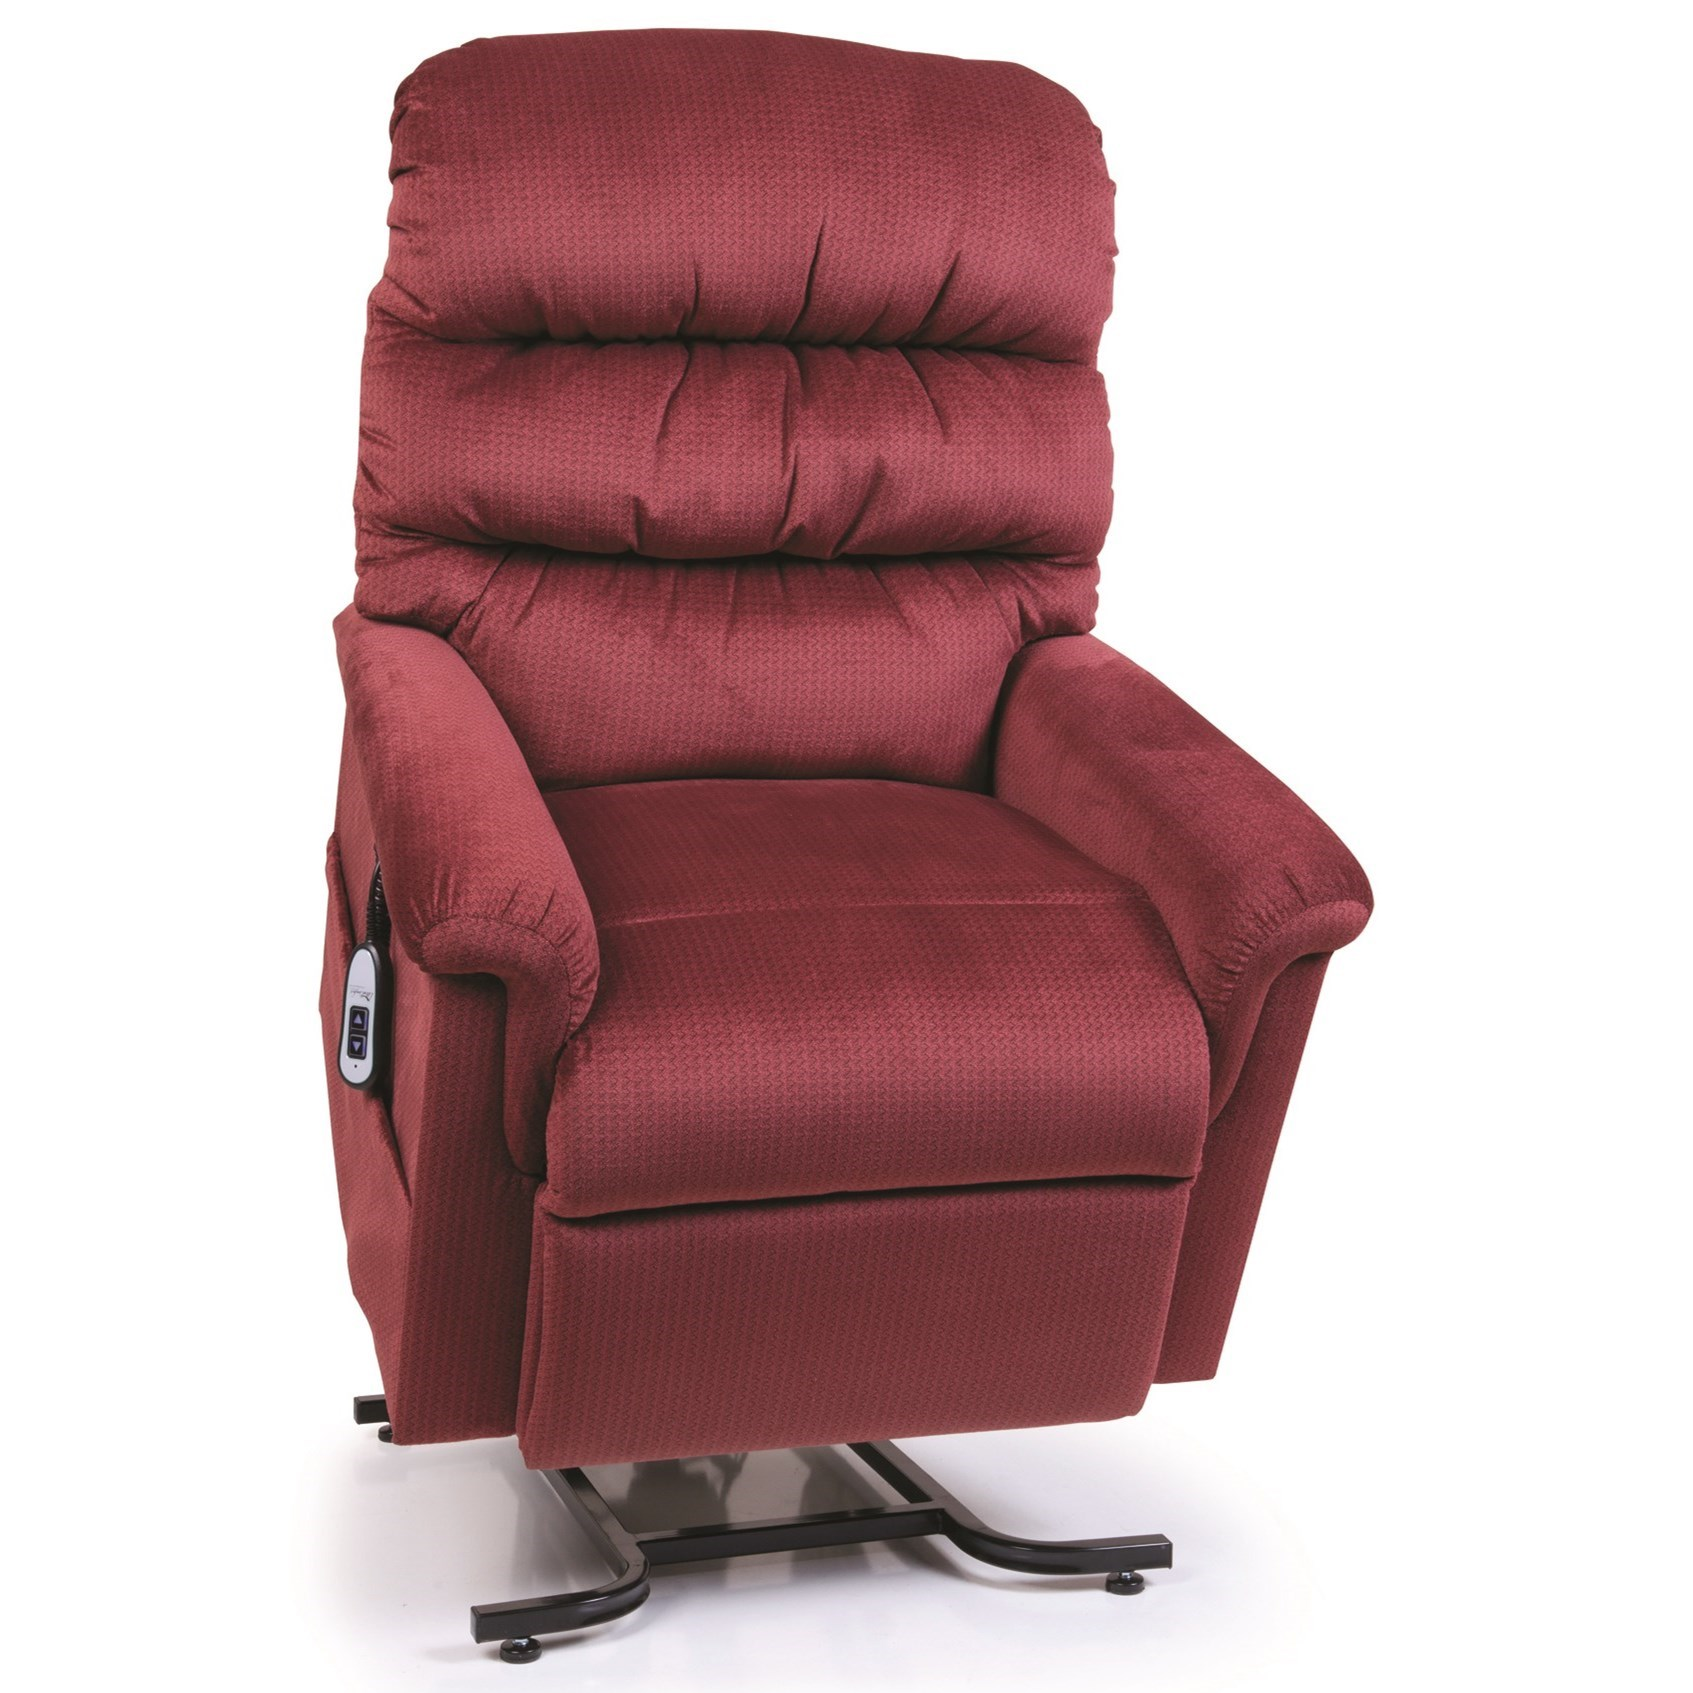 Ultracomfort Montage Large Lift Recliner Fashion